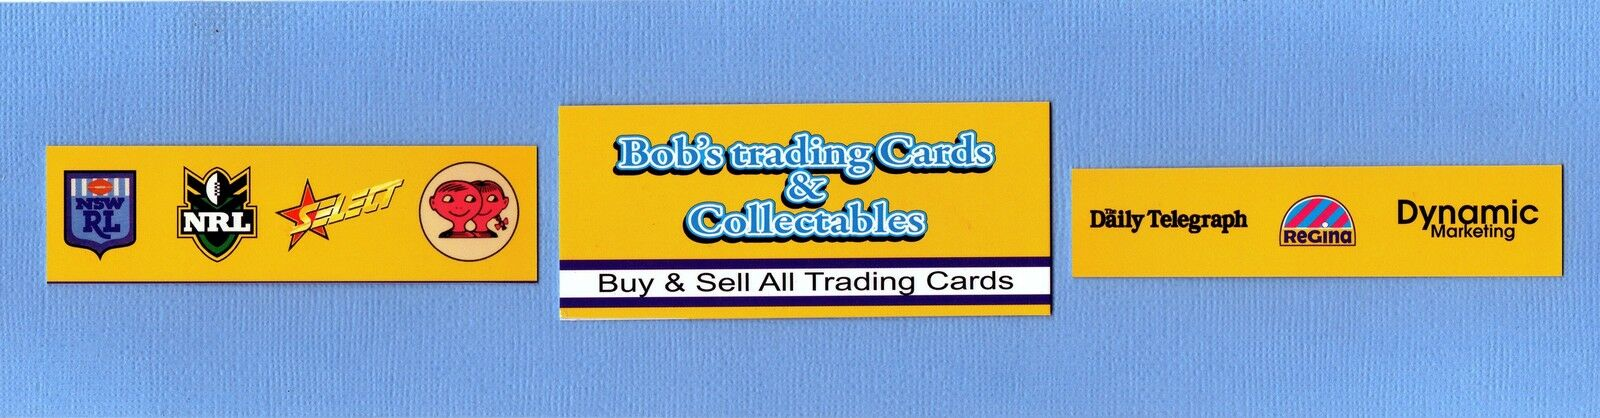 BOBS TRADING CARDS AND COLLECTABLES